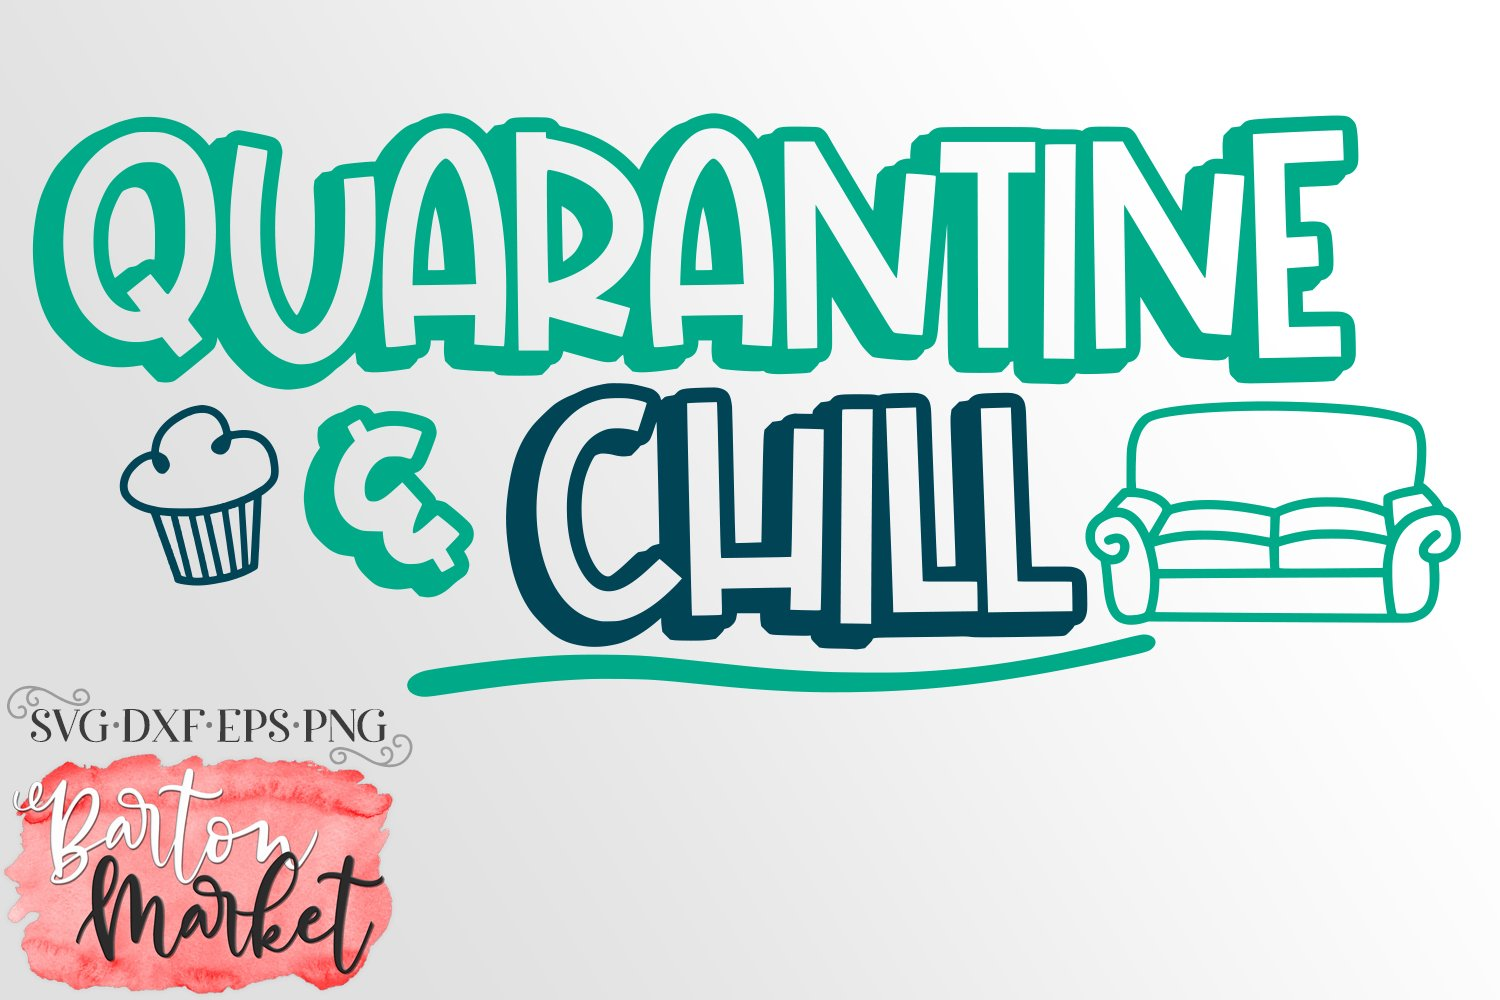 Quarantine & Chill SVG DXF EPS PNG example image 1